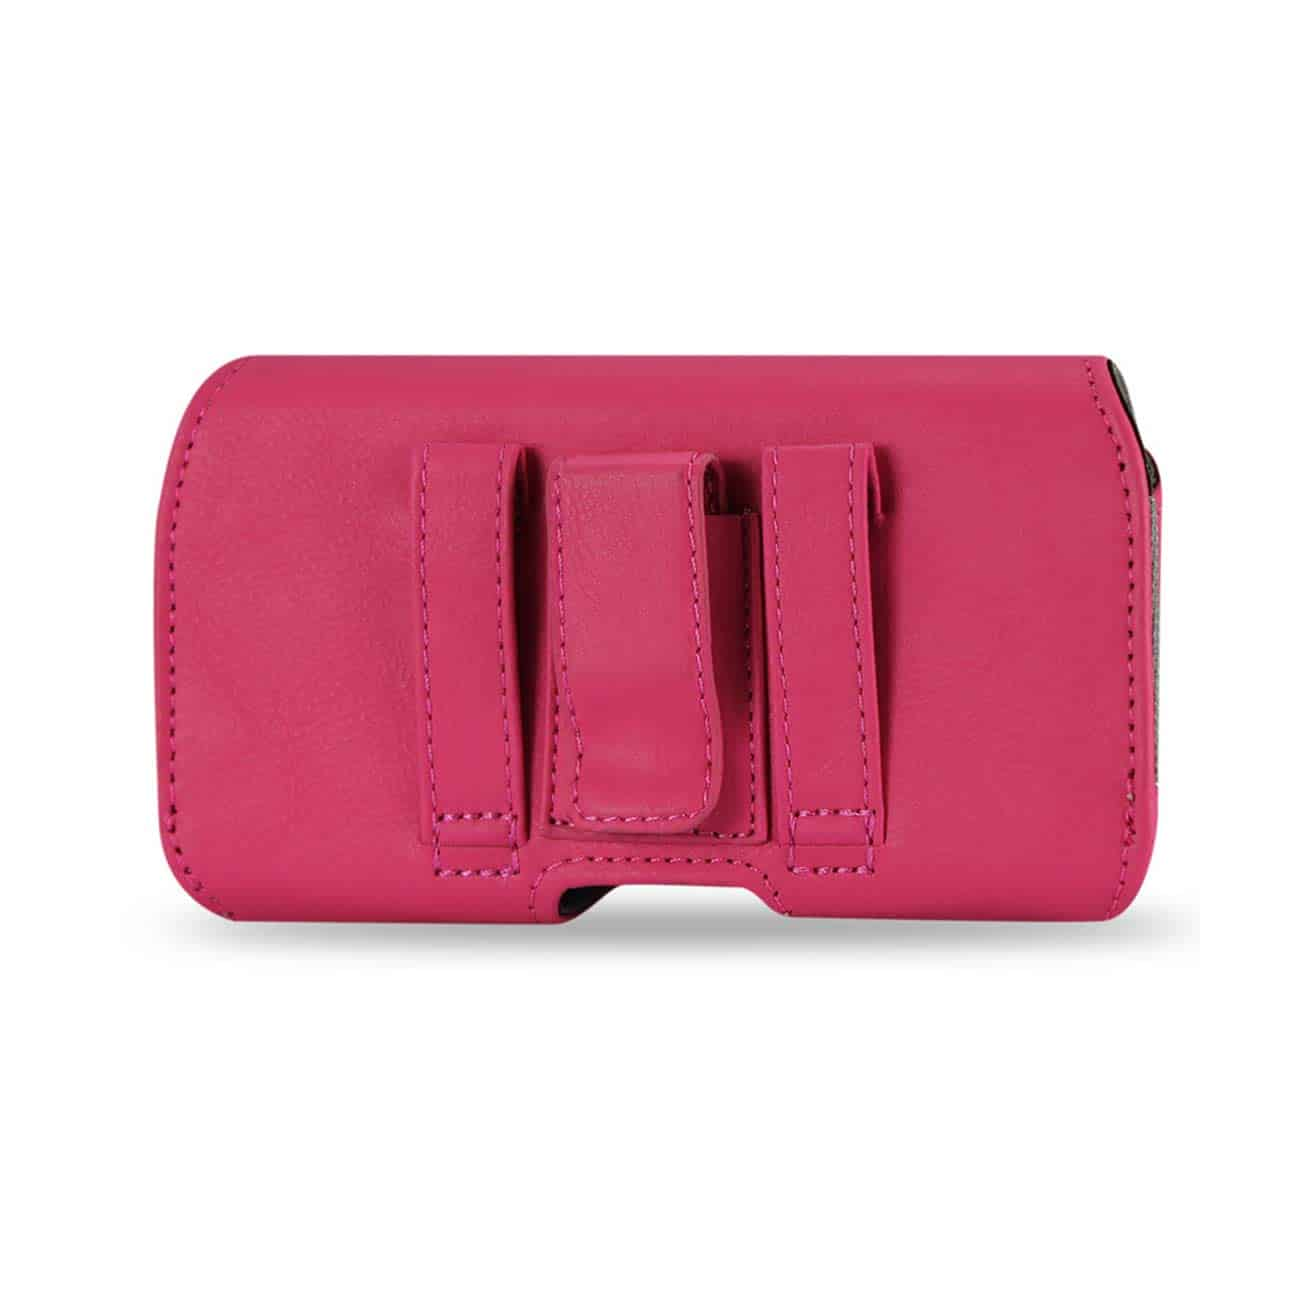 HORIZONTAL Z LID LEATHER POUCH IPHONE4 PLUS HOT PINK